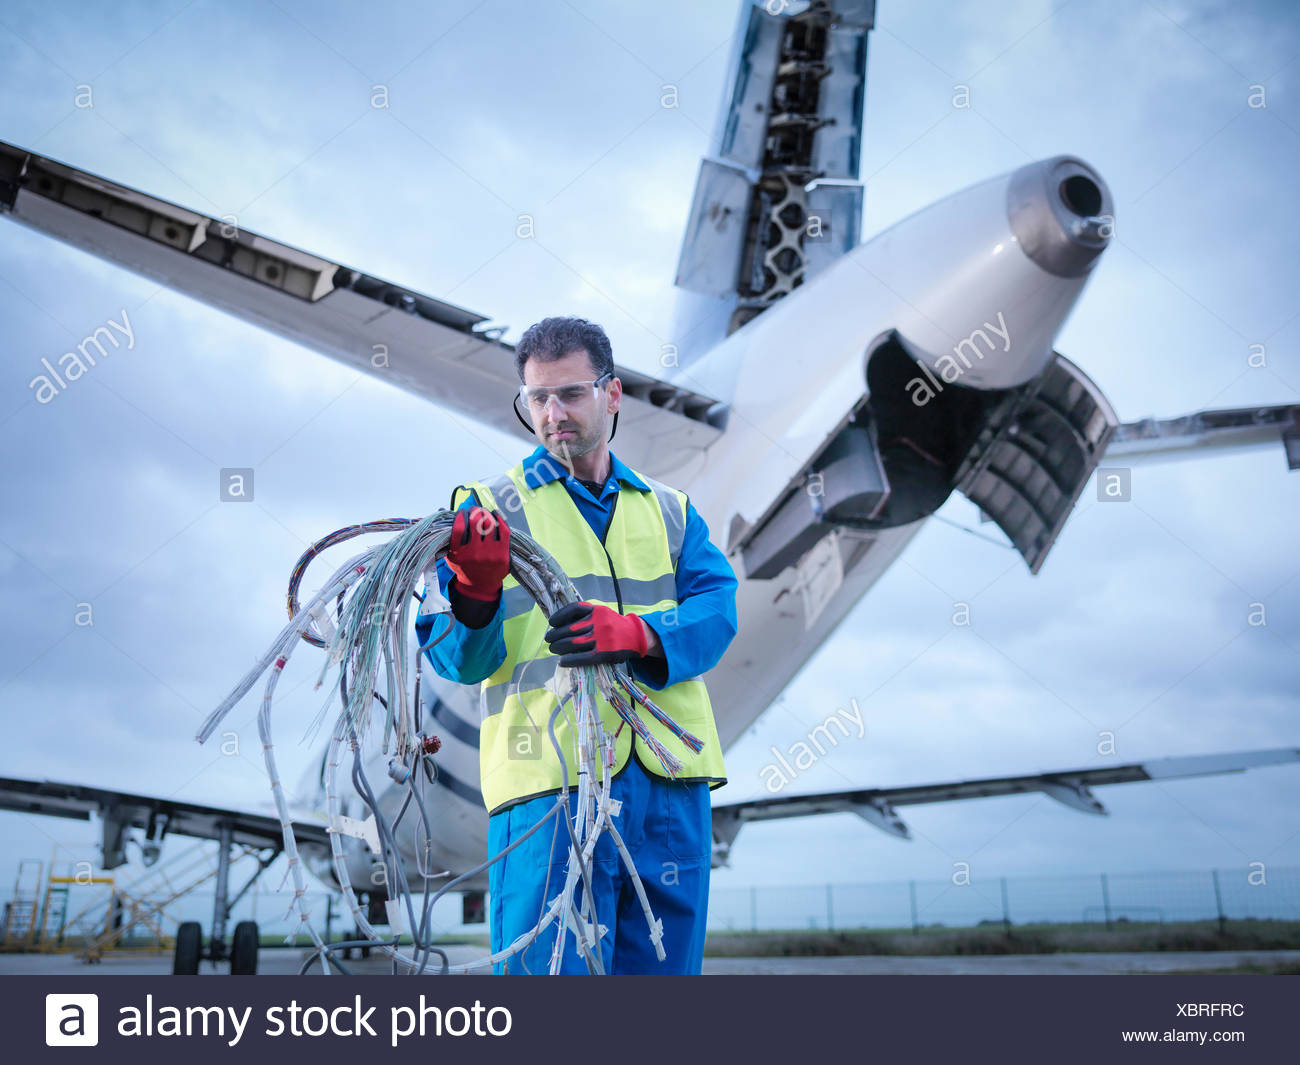 Engineer recycling aircraft parts on runway - Stock Image